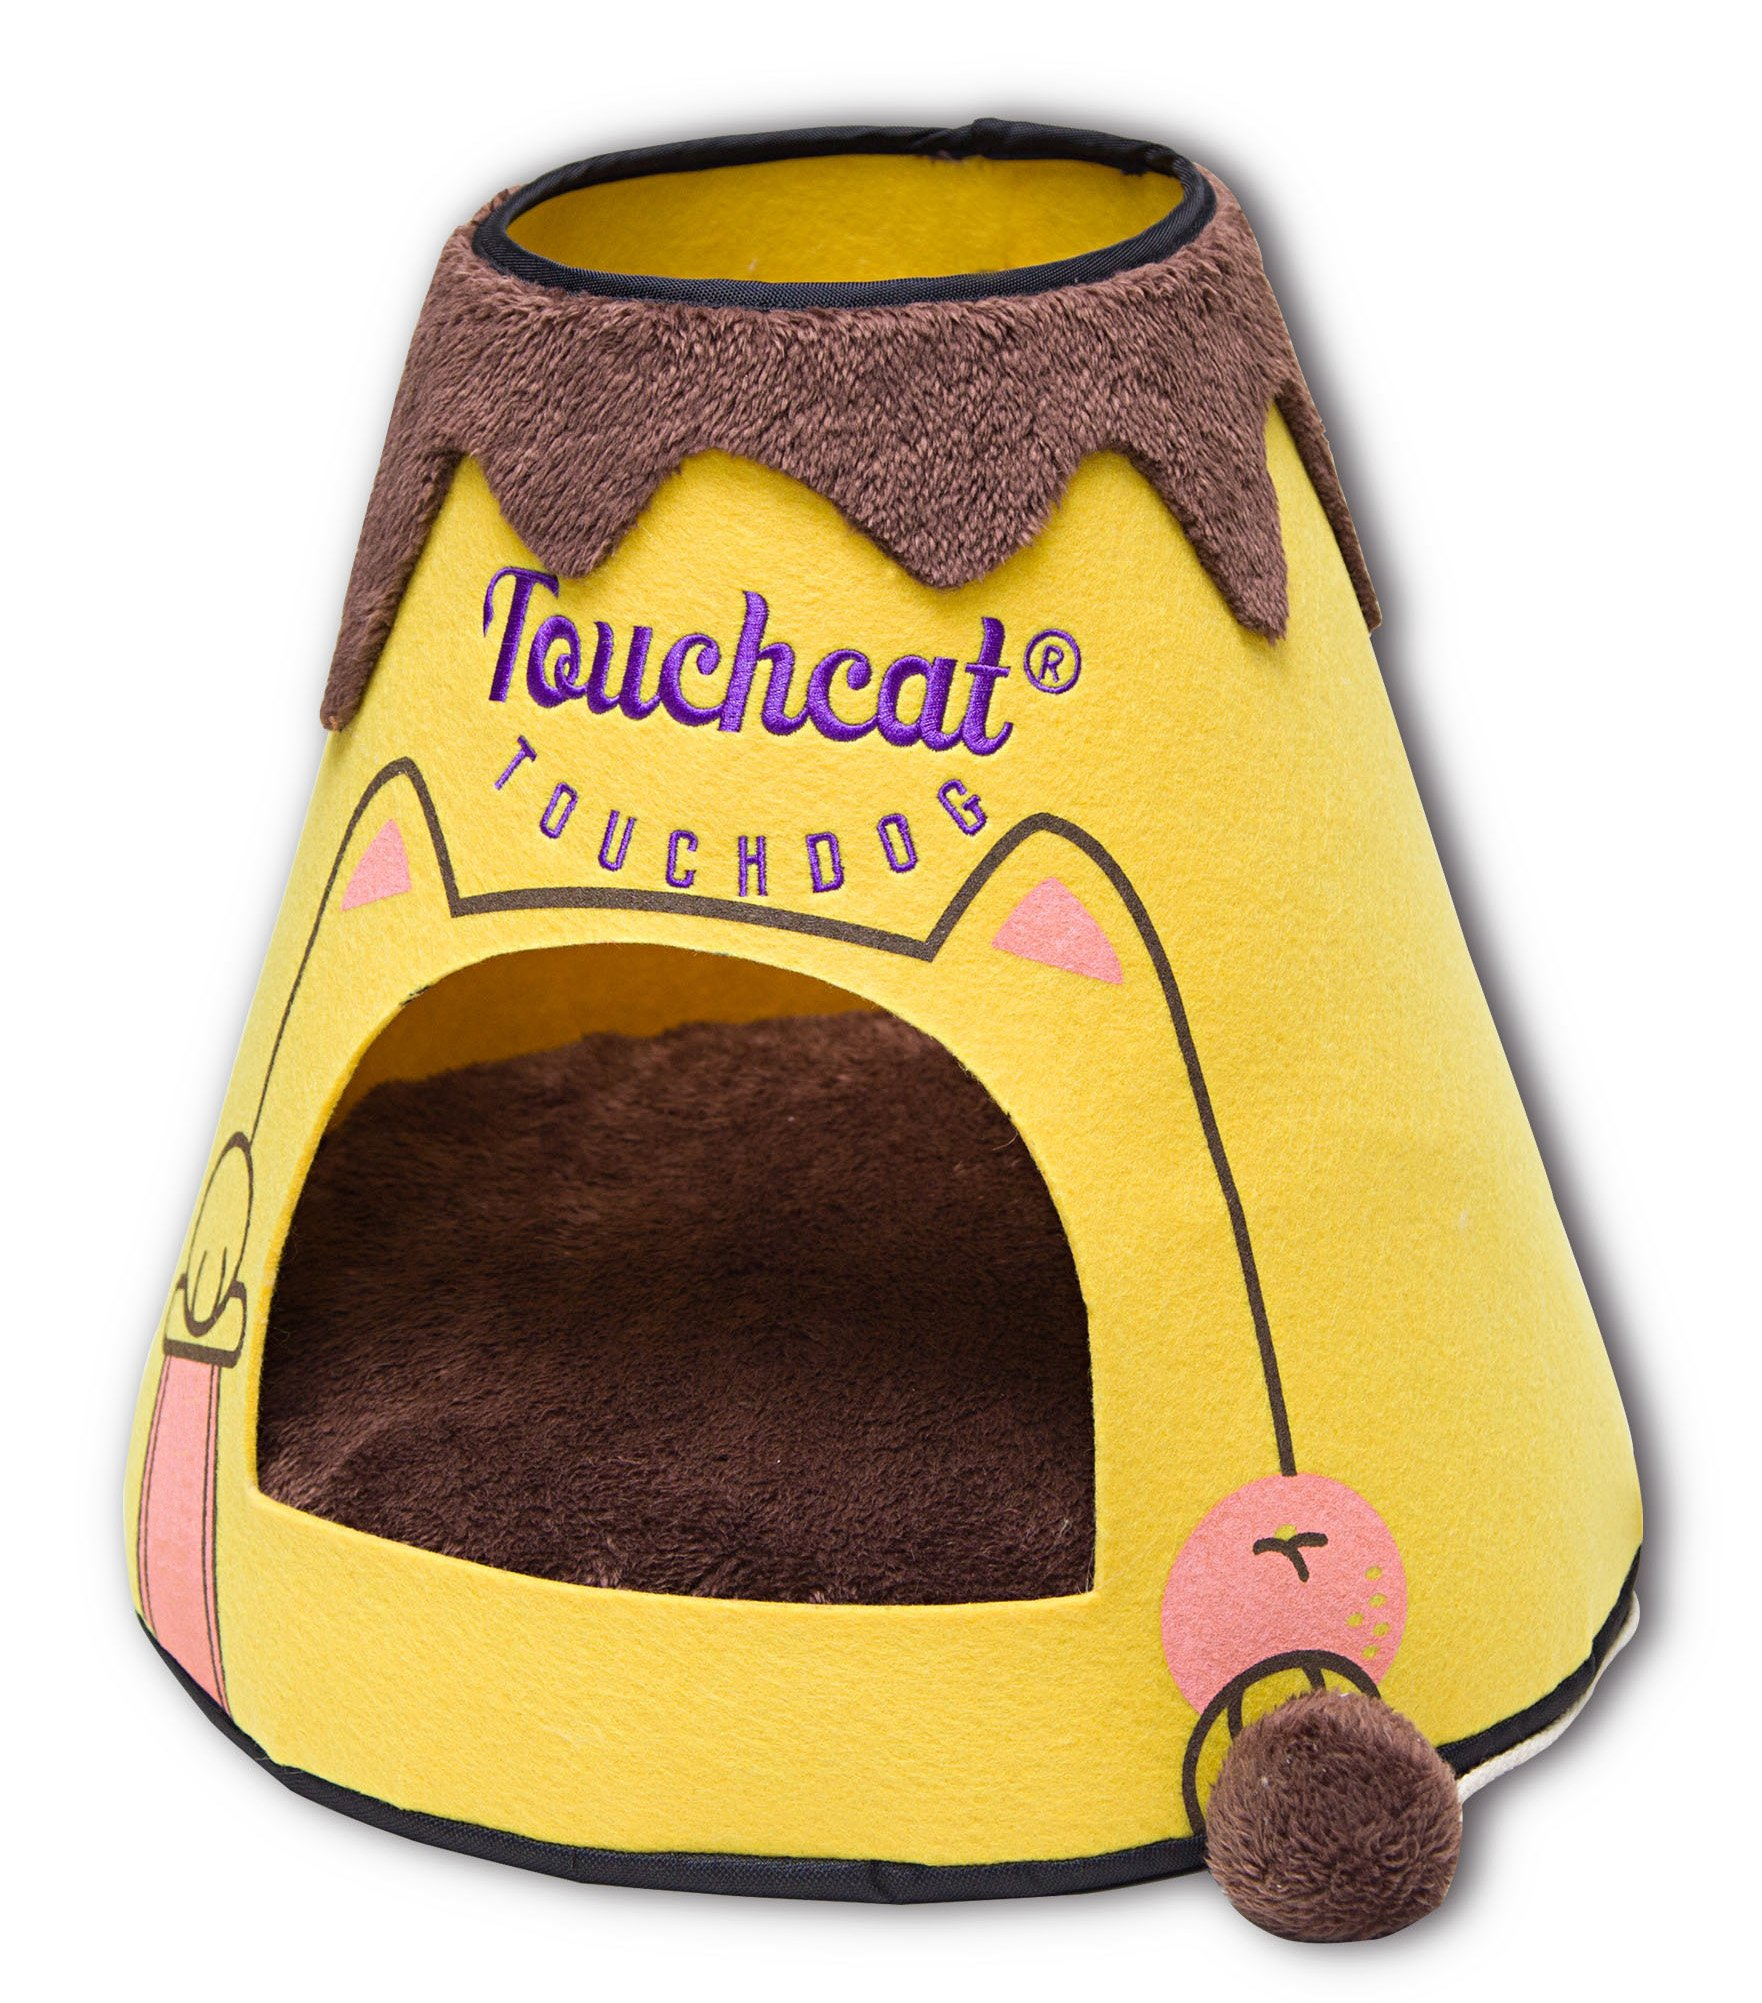 TOUCHCAT 'Molten Lava' Triangular Frashion Designer Pet Kitty Cat Bed House Lounge Lounger w/ Hanging Teaser Toy, Large, Brown and Yellow by Touchcat (Image #1)